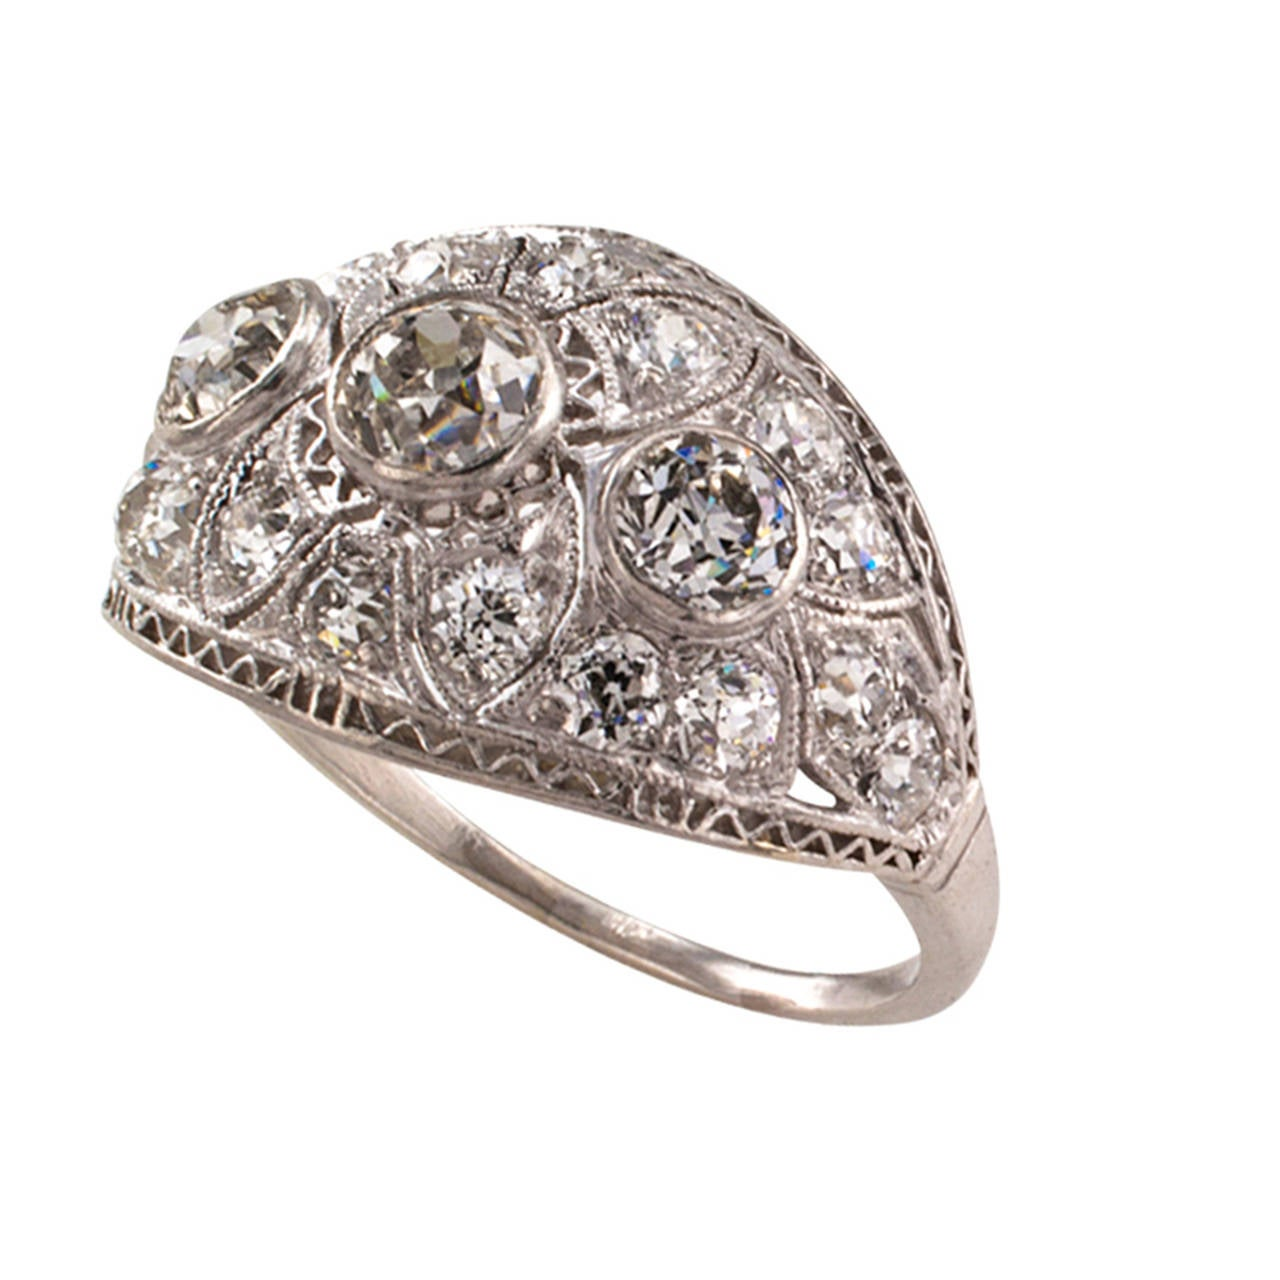 Edwardian Engagement Rings For Sale: Edwardian Diamond Platinum Engagement Ring For Sale At 1stdibs